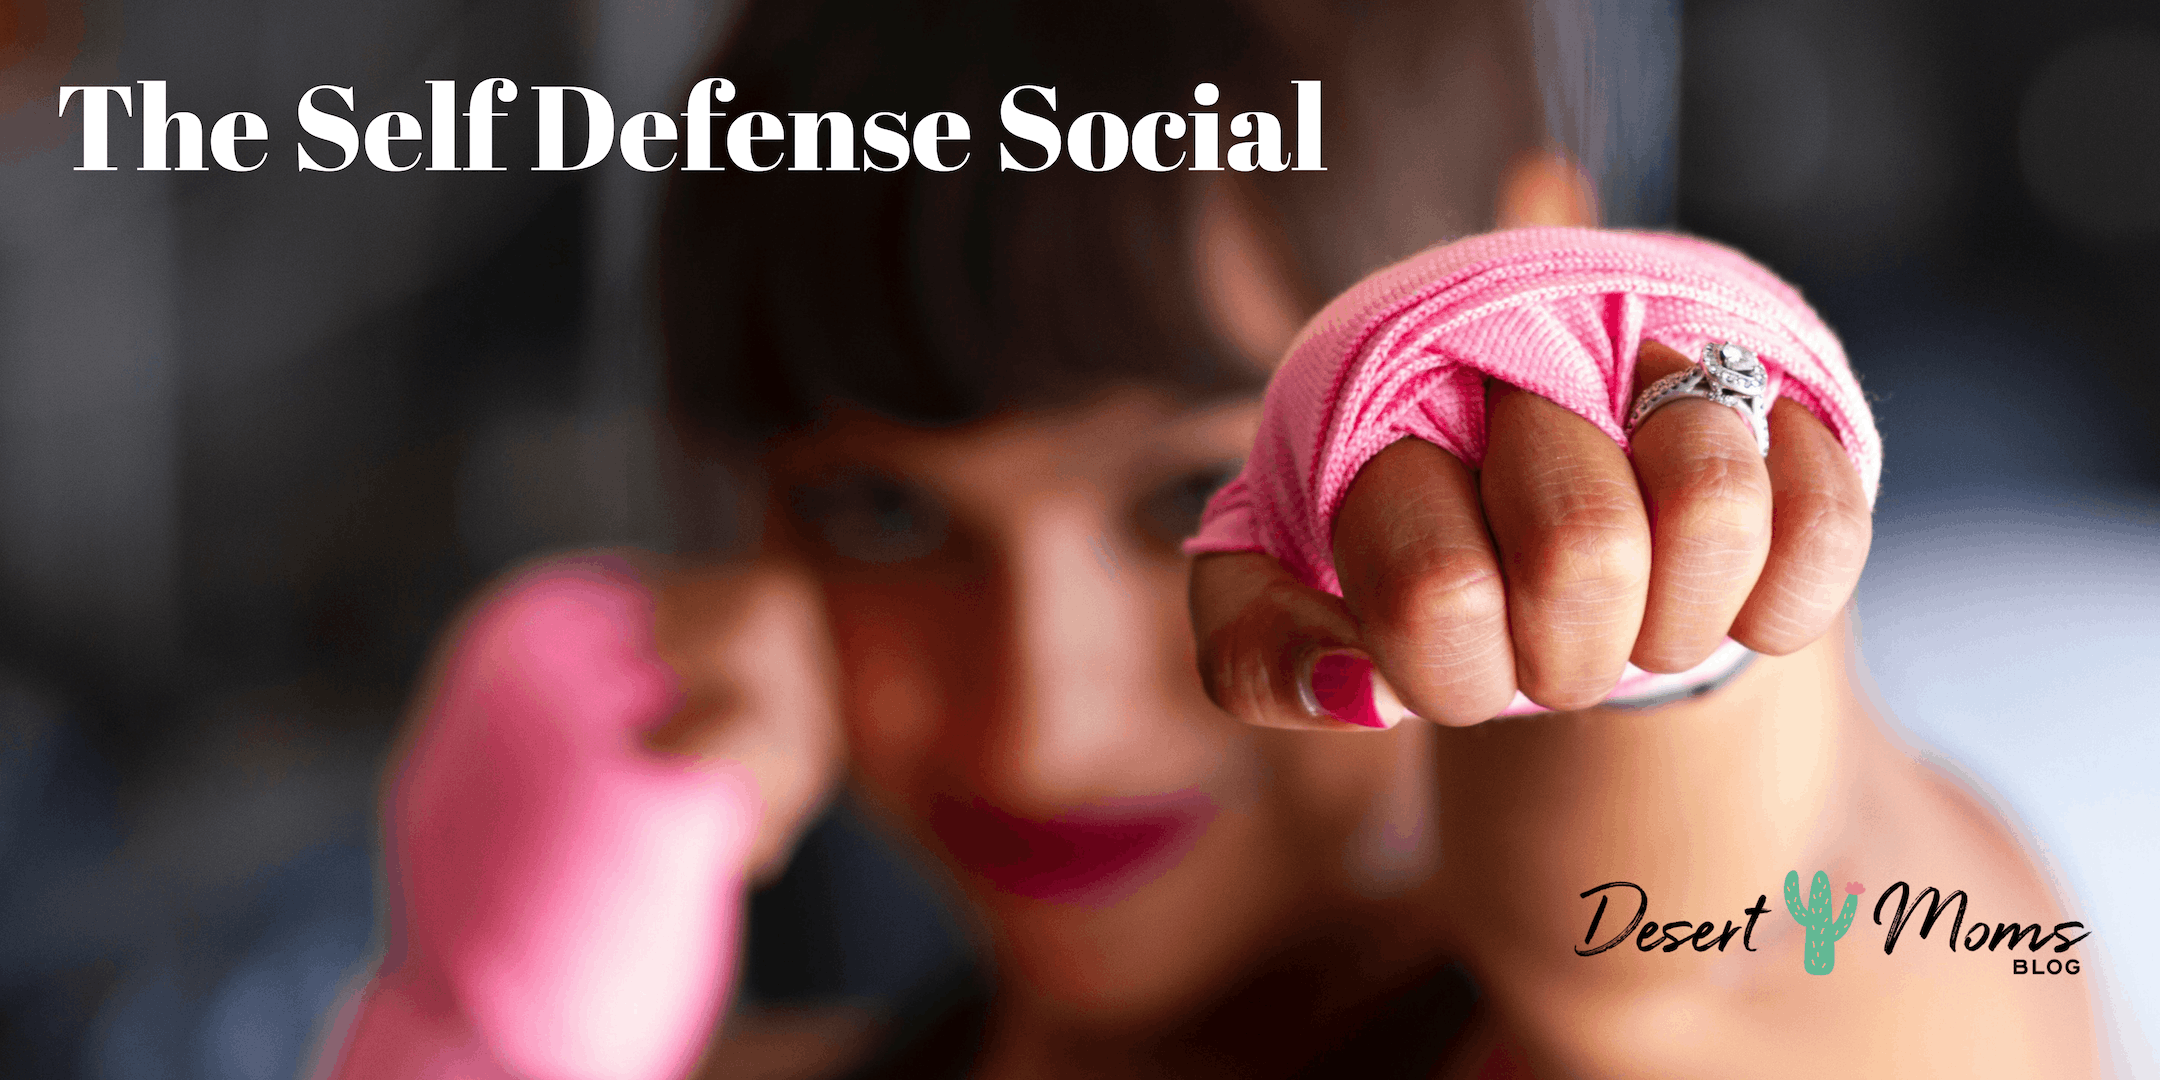 The Self Defense Social